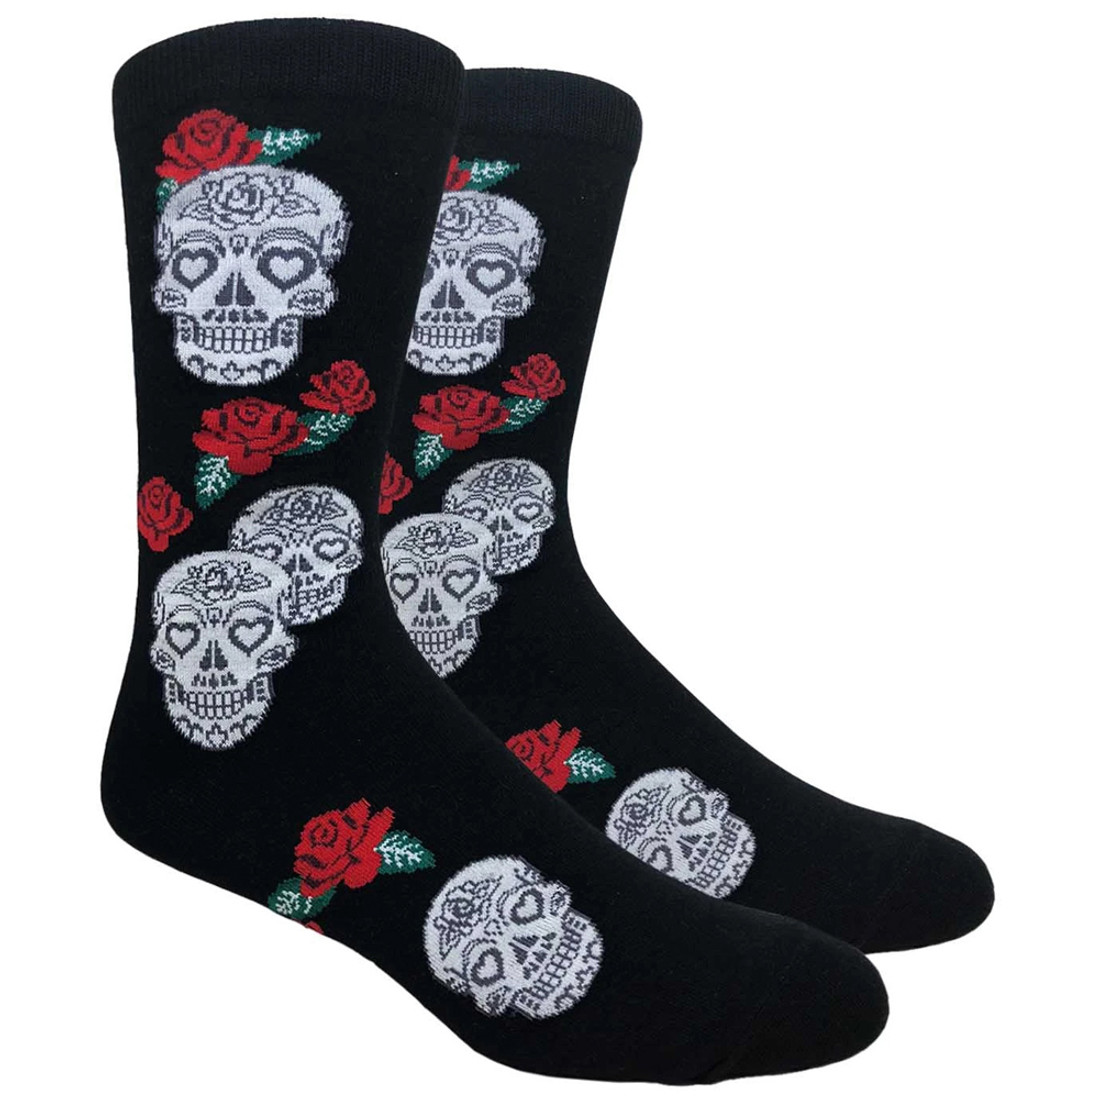 Skull and Roses Men's Crew Socks